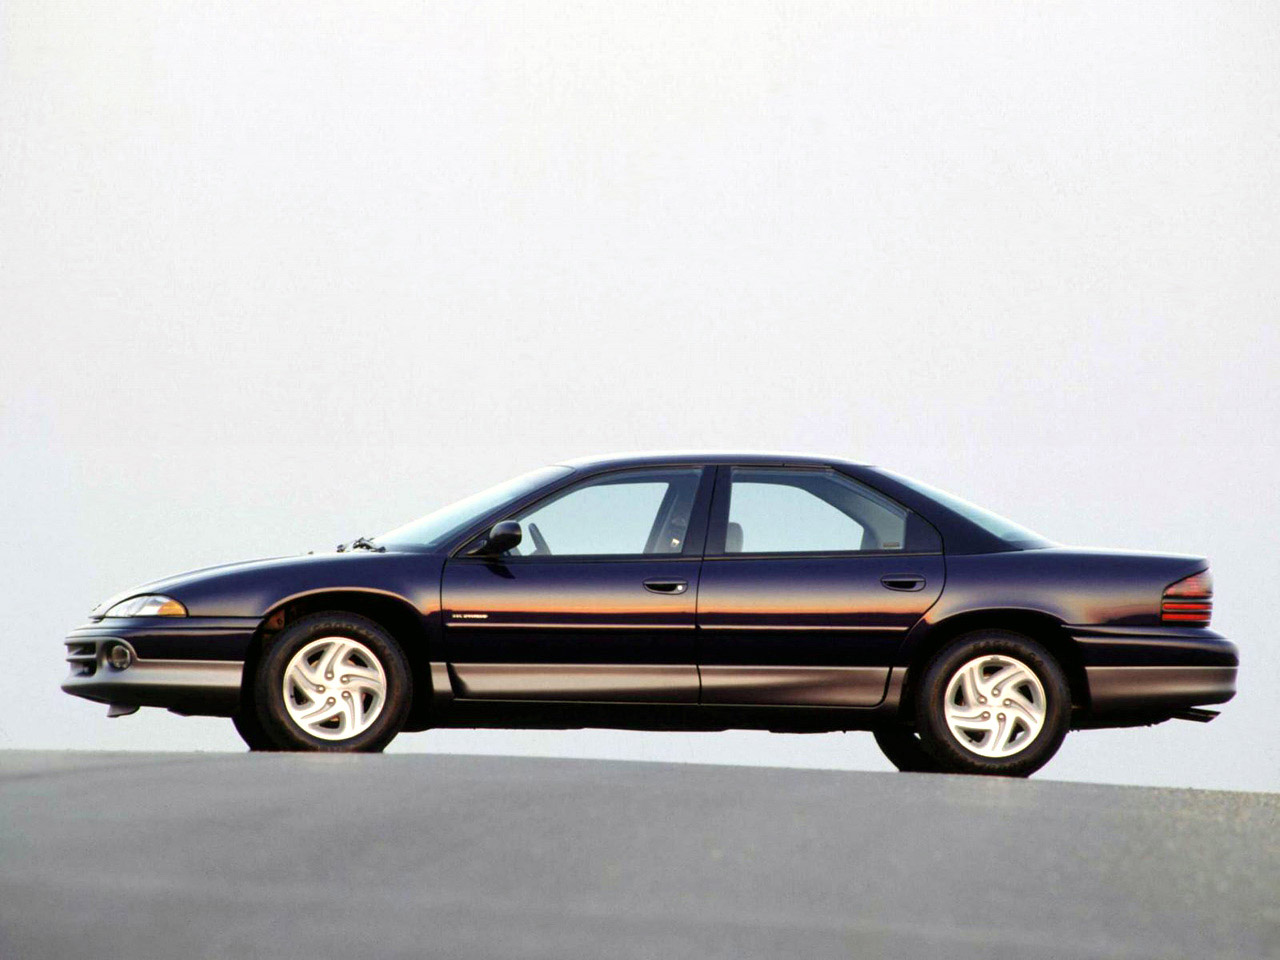 Dodge Intrepid 1993-1997 Dodge Intrepid 1993-1997 Photo 01 – Car in pictures - car photo gallery